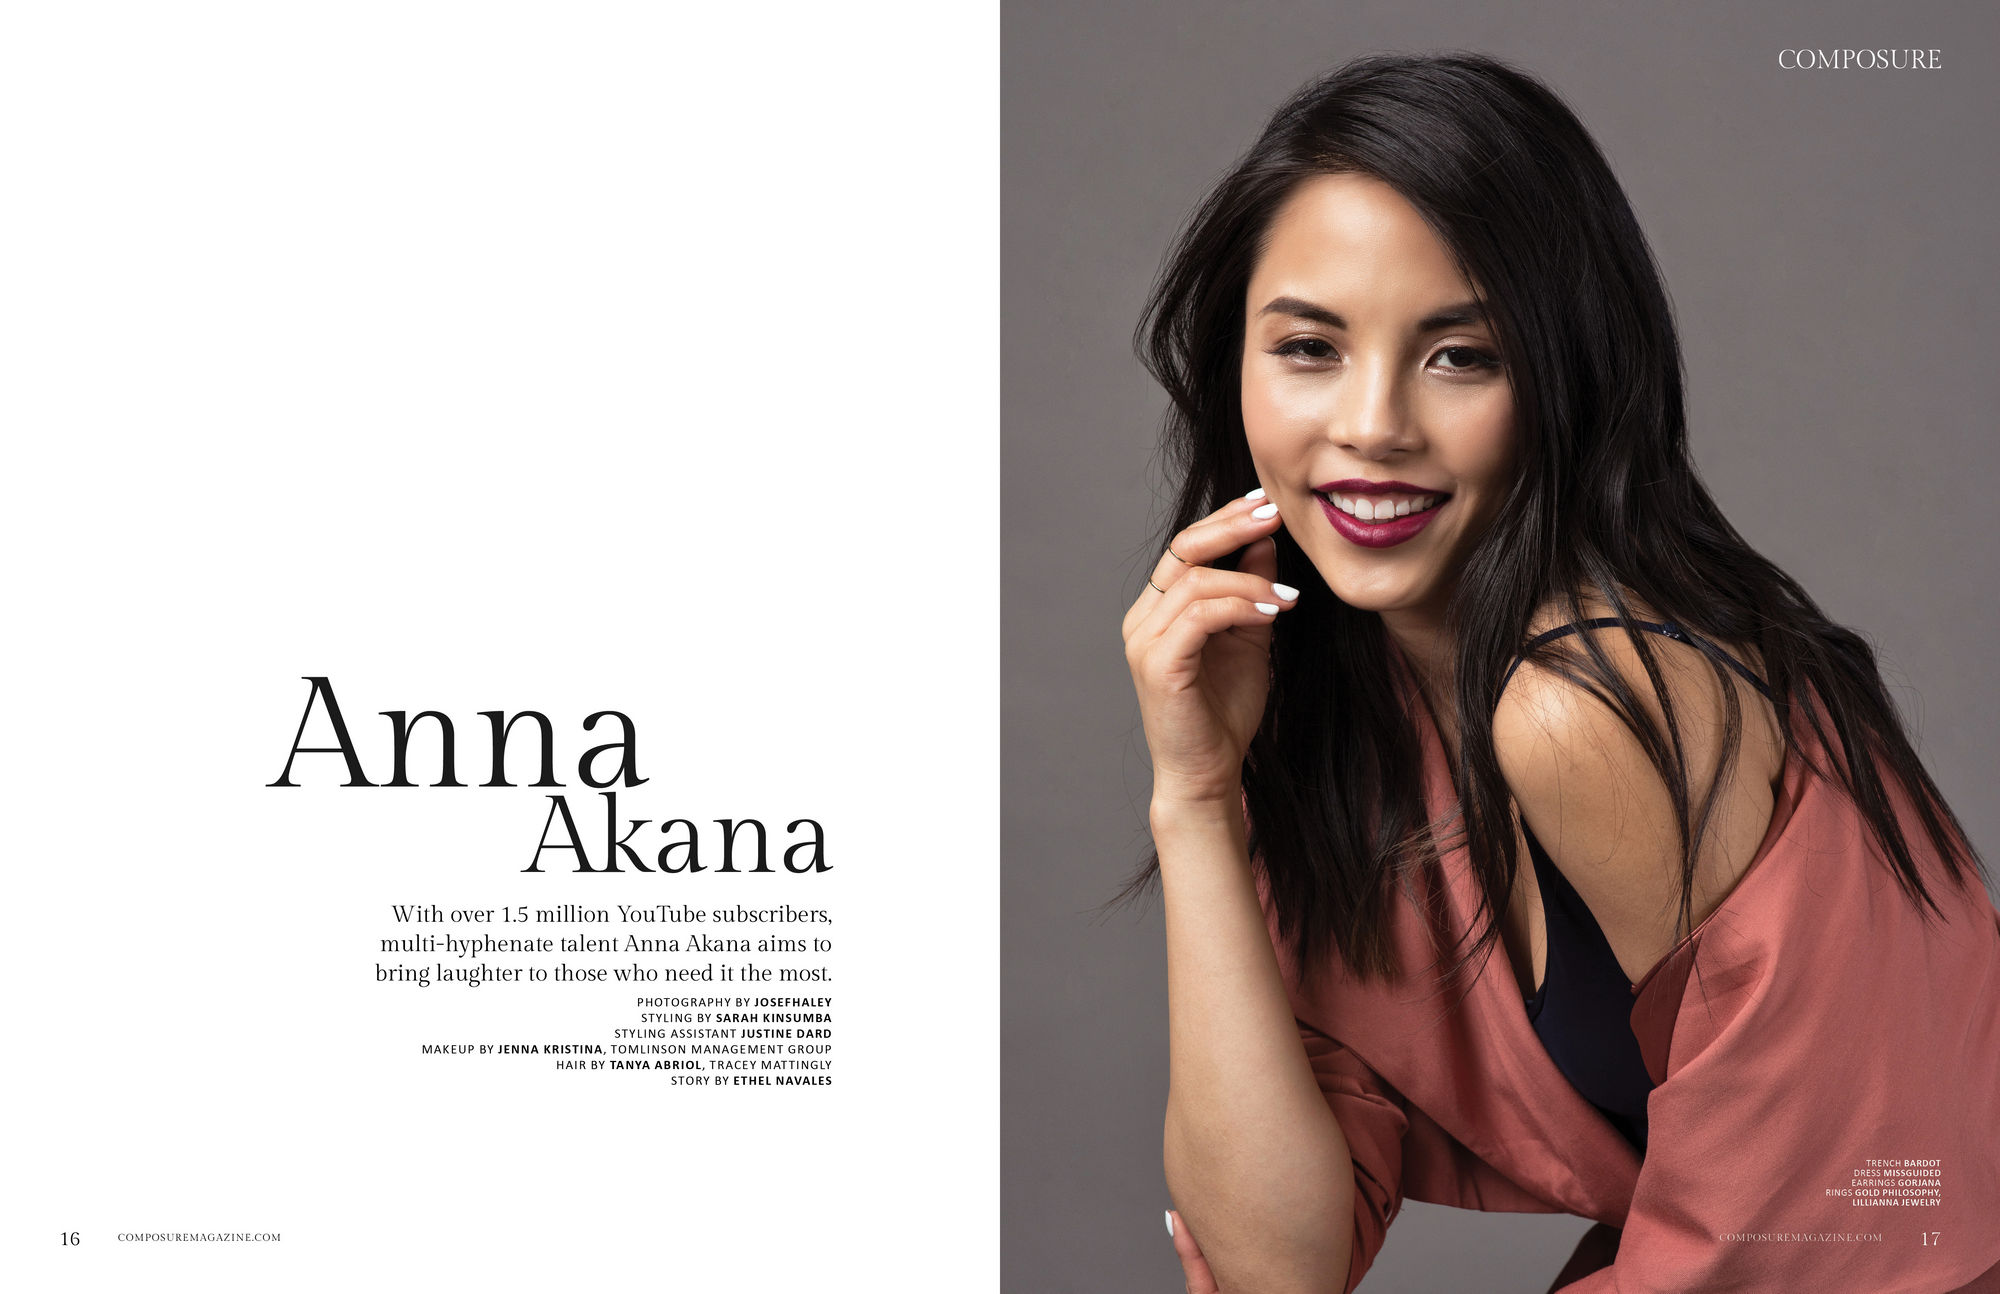 anna akana instagramanna akana cats, anna akana wiki, anna akana and ray william, anna akana age, anna akana brad gage, anna akana instagram, anna akana makeup, anna akana imdb, anna akana congress, anna akana i have 6 cats, anna akana youtube, anna akana vegan, anna akana business, anna akana house, anna akana height, anna akana shake it up, anna akana ant man, anna akana listal, anna akana bio, anna akana clothes